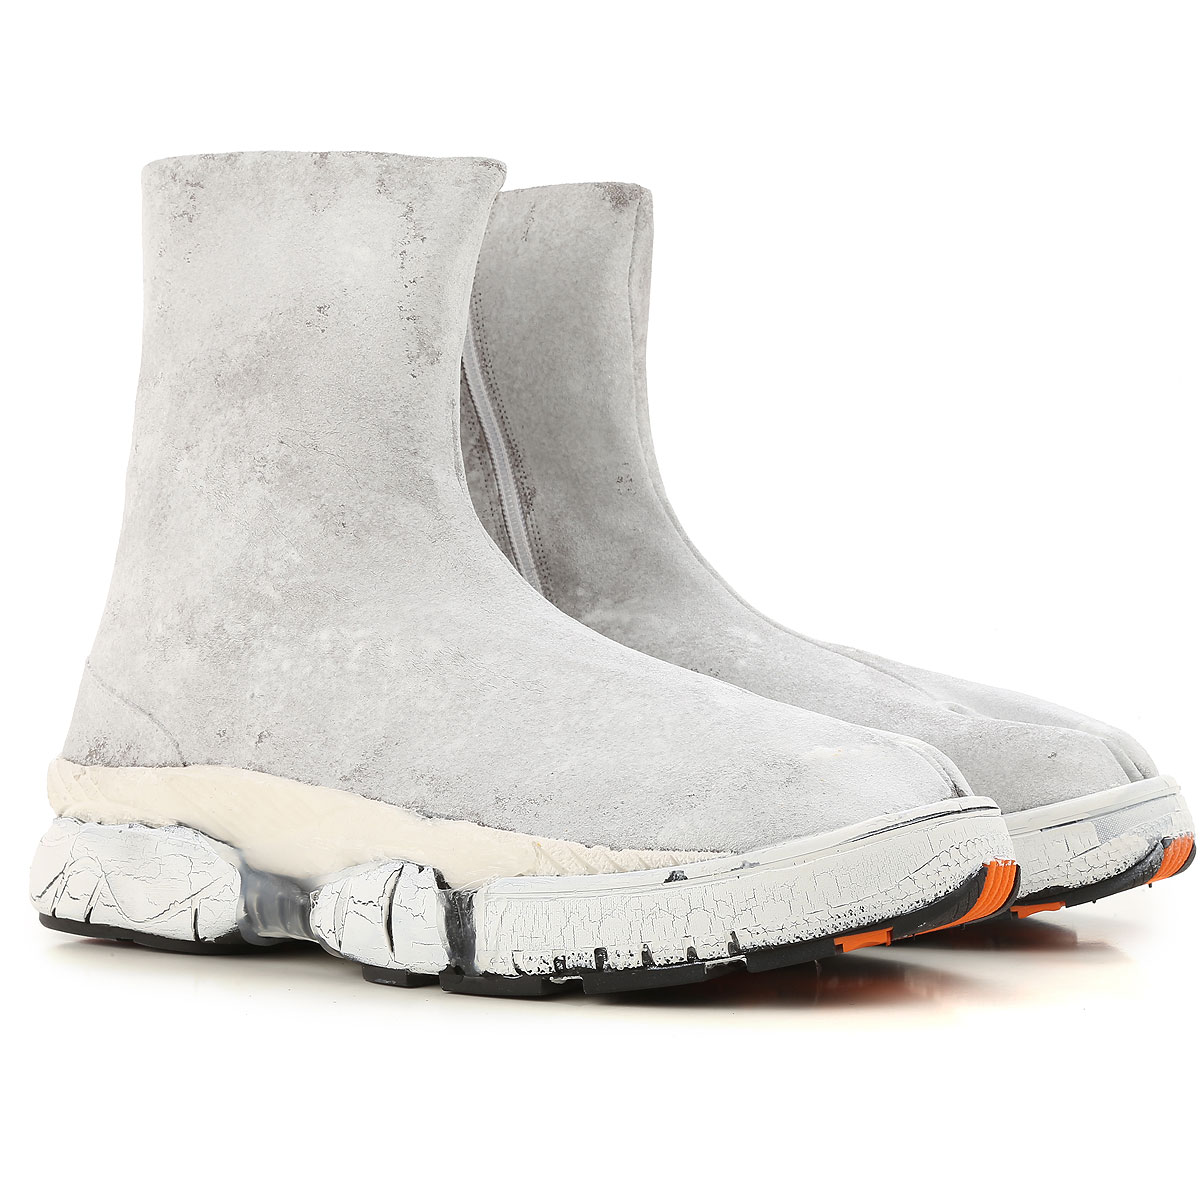 Image of Maison Martin Margiela Boots for Men, Booties, White, Leather, 2017, 10 10.5 6.5 8